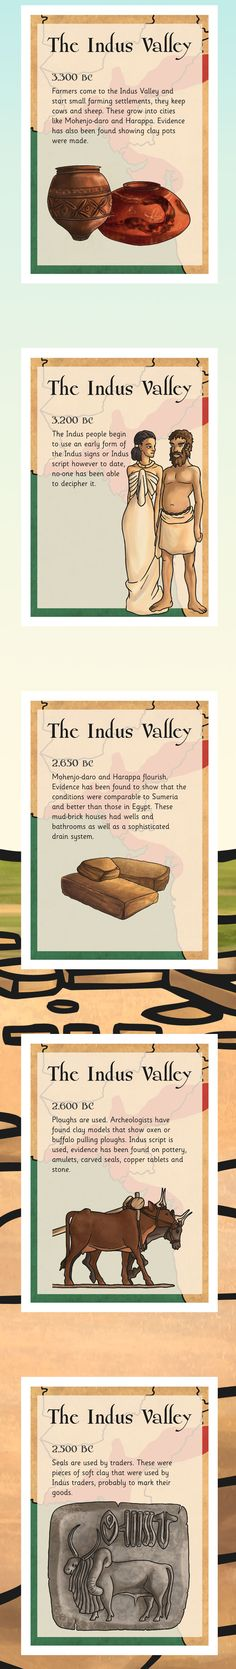 KS2 History Timelines- The Indus Valley Timeline Posters